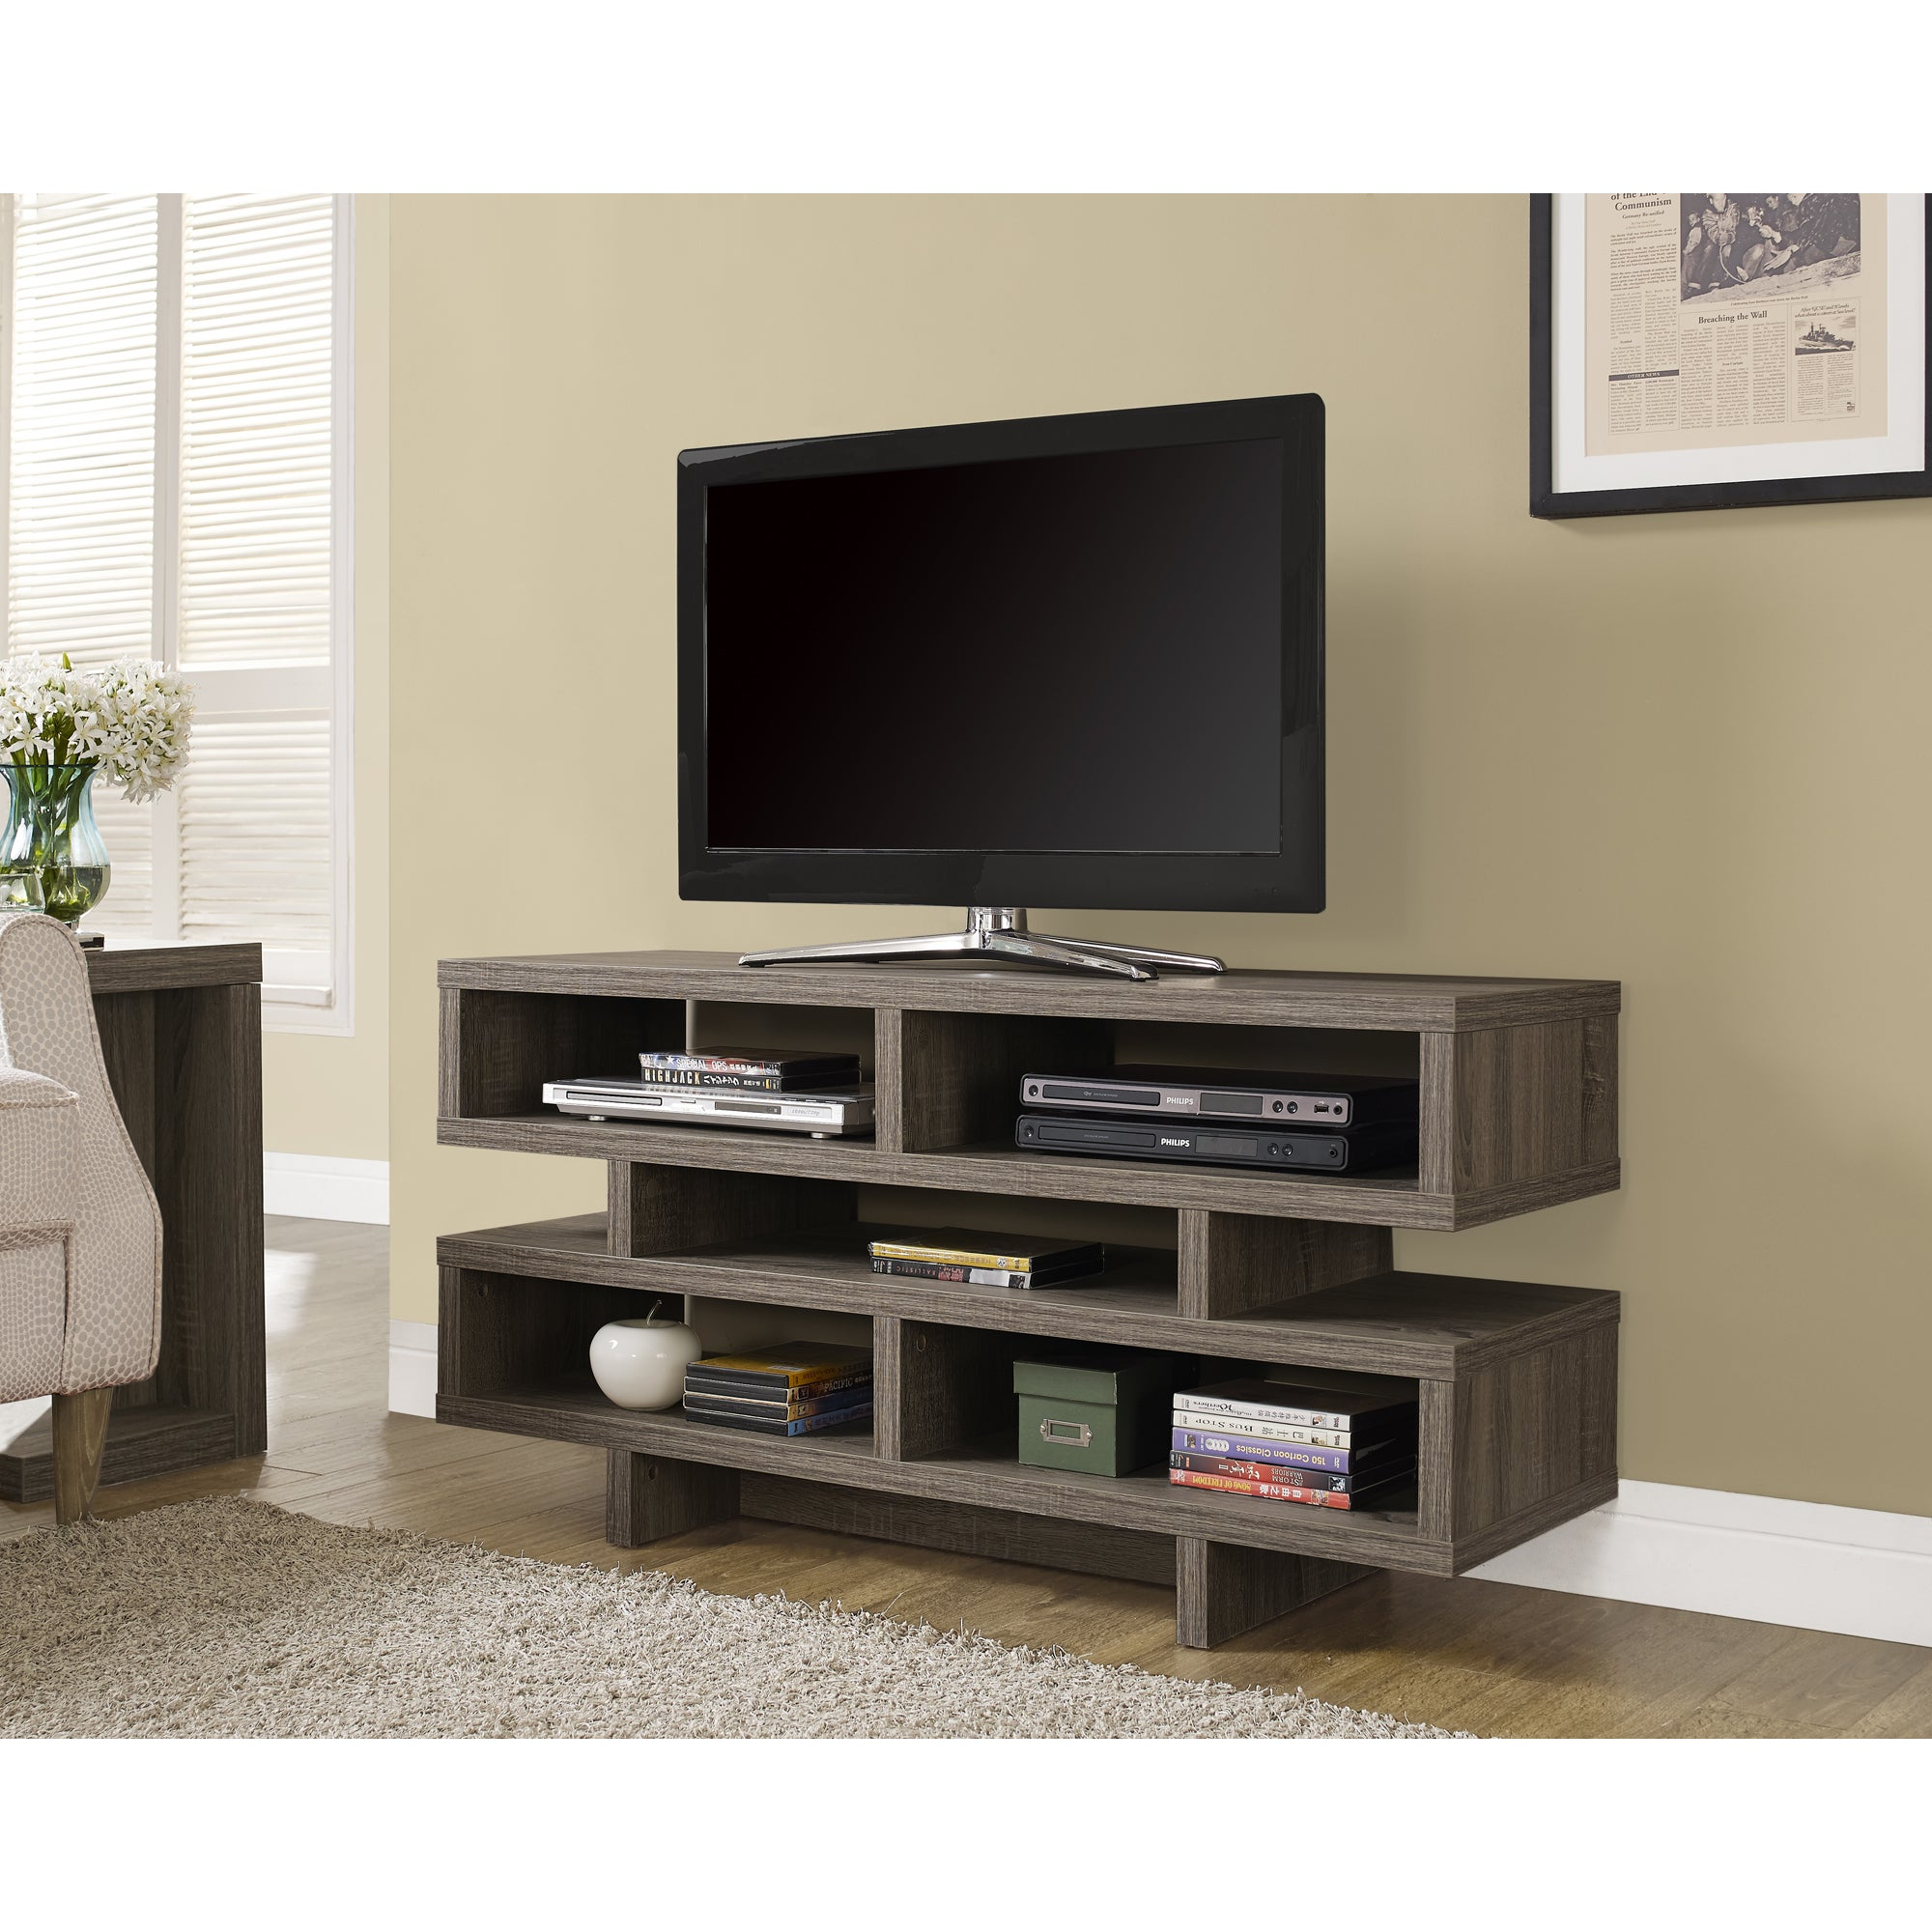 Shop Dark Taupe Reclaimed look Hollow core TV Console